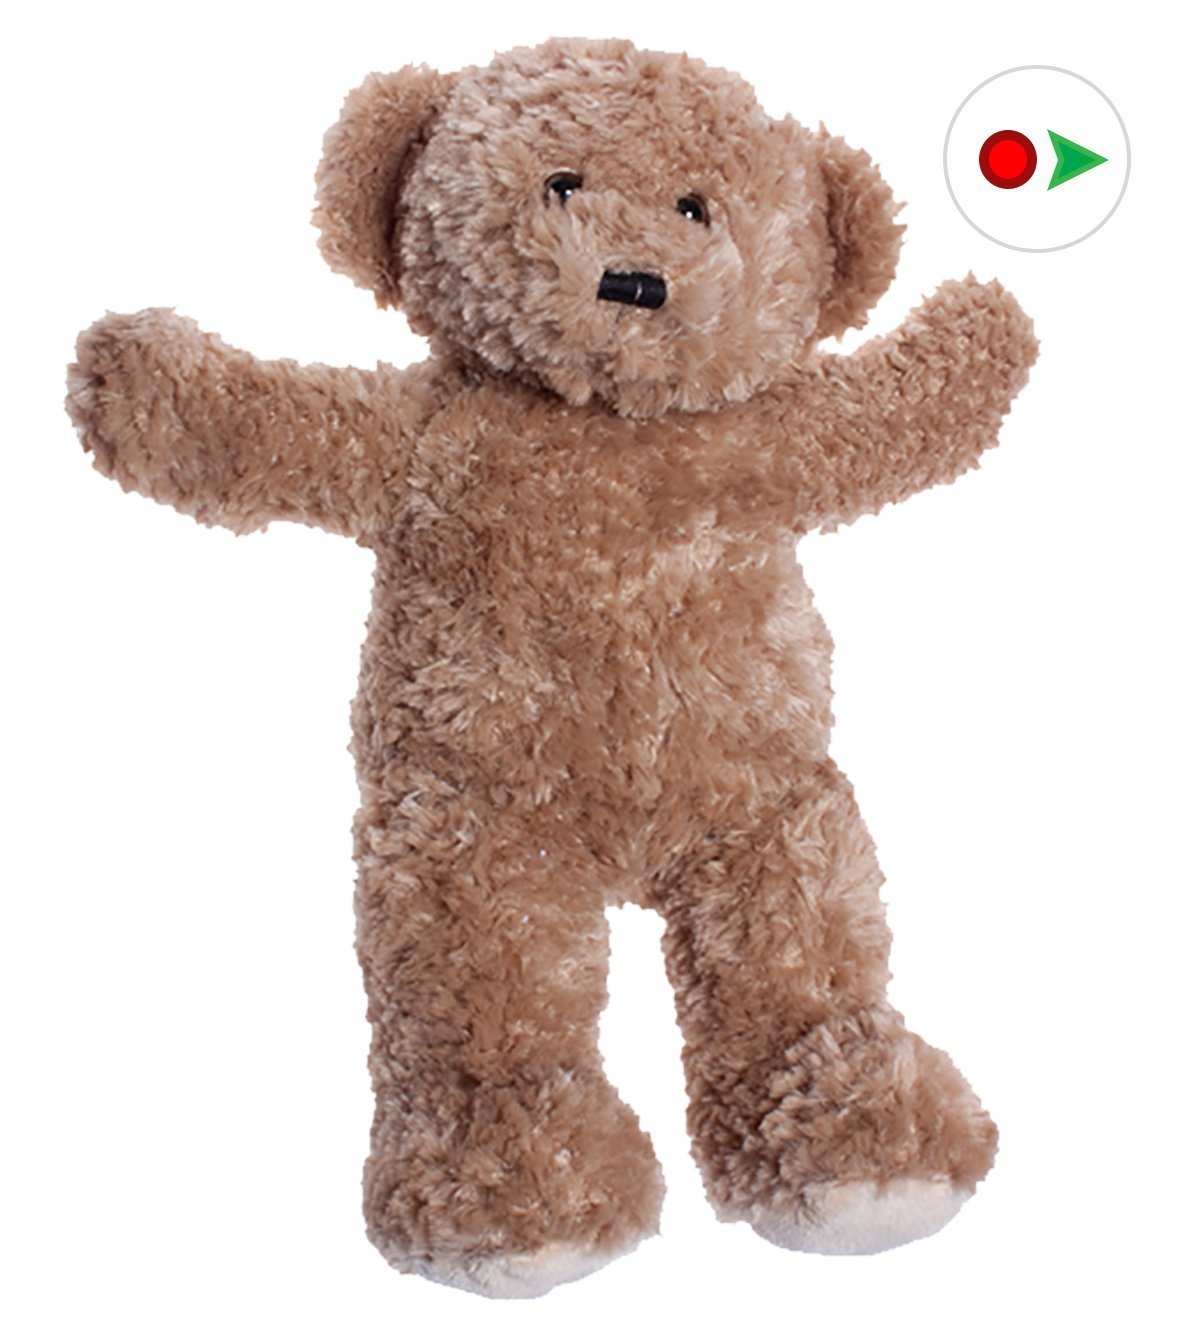 Record Your Own Plush 16 inch Chenille Brown Bear - Ready To Love In A Few Easy Steps